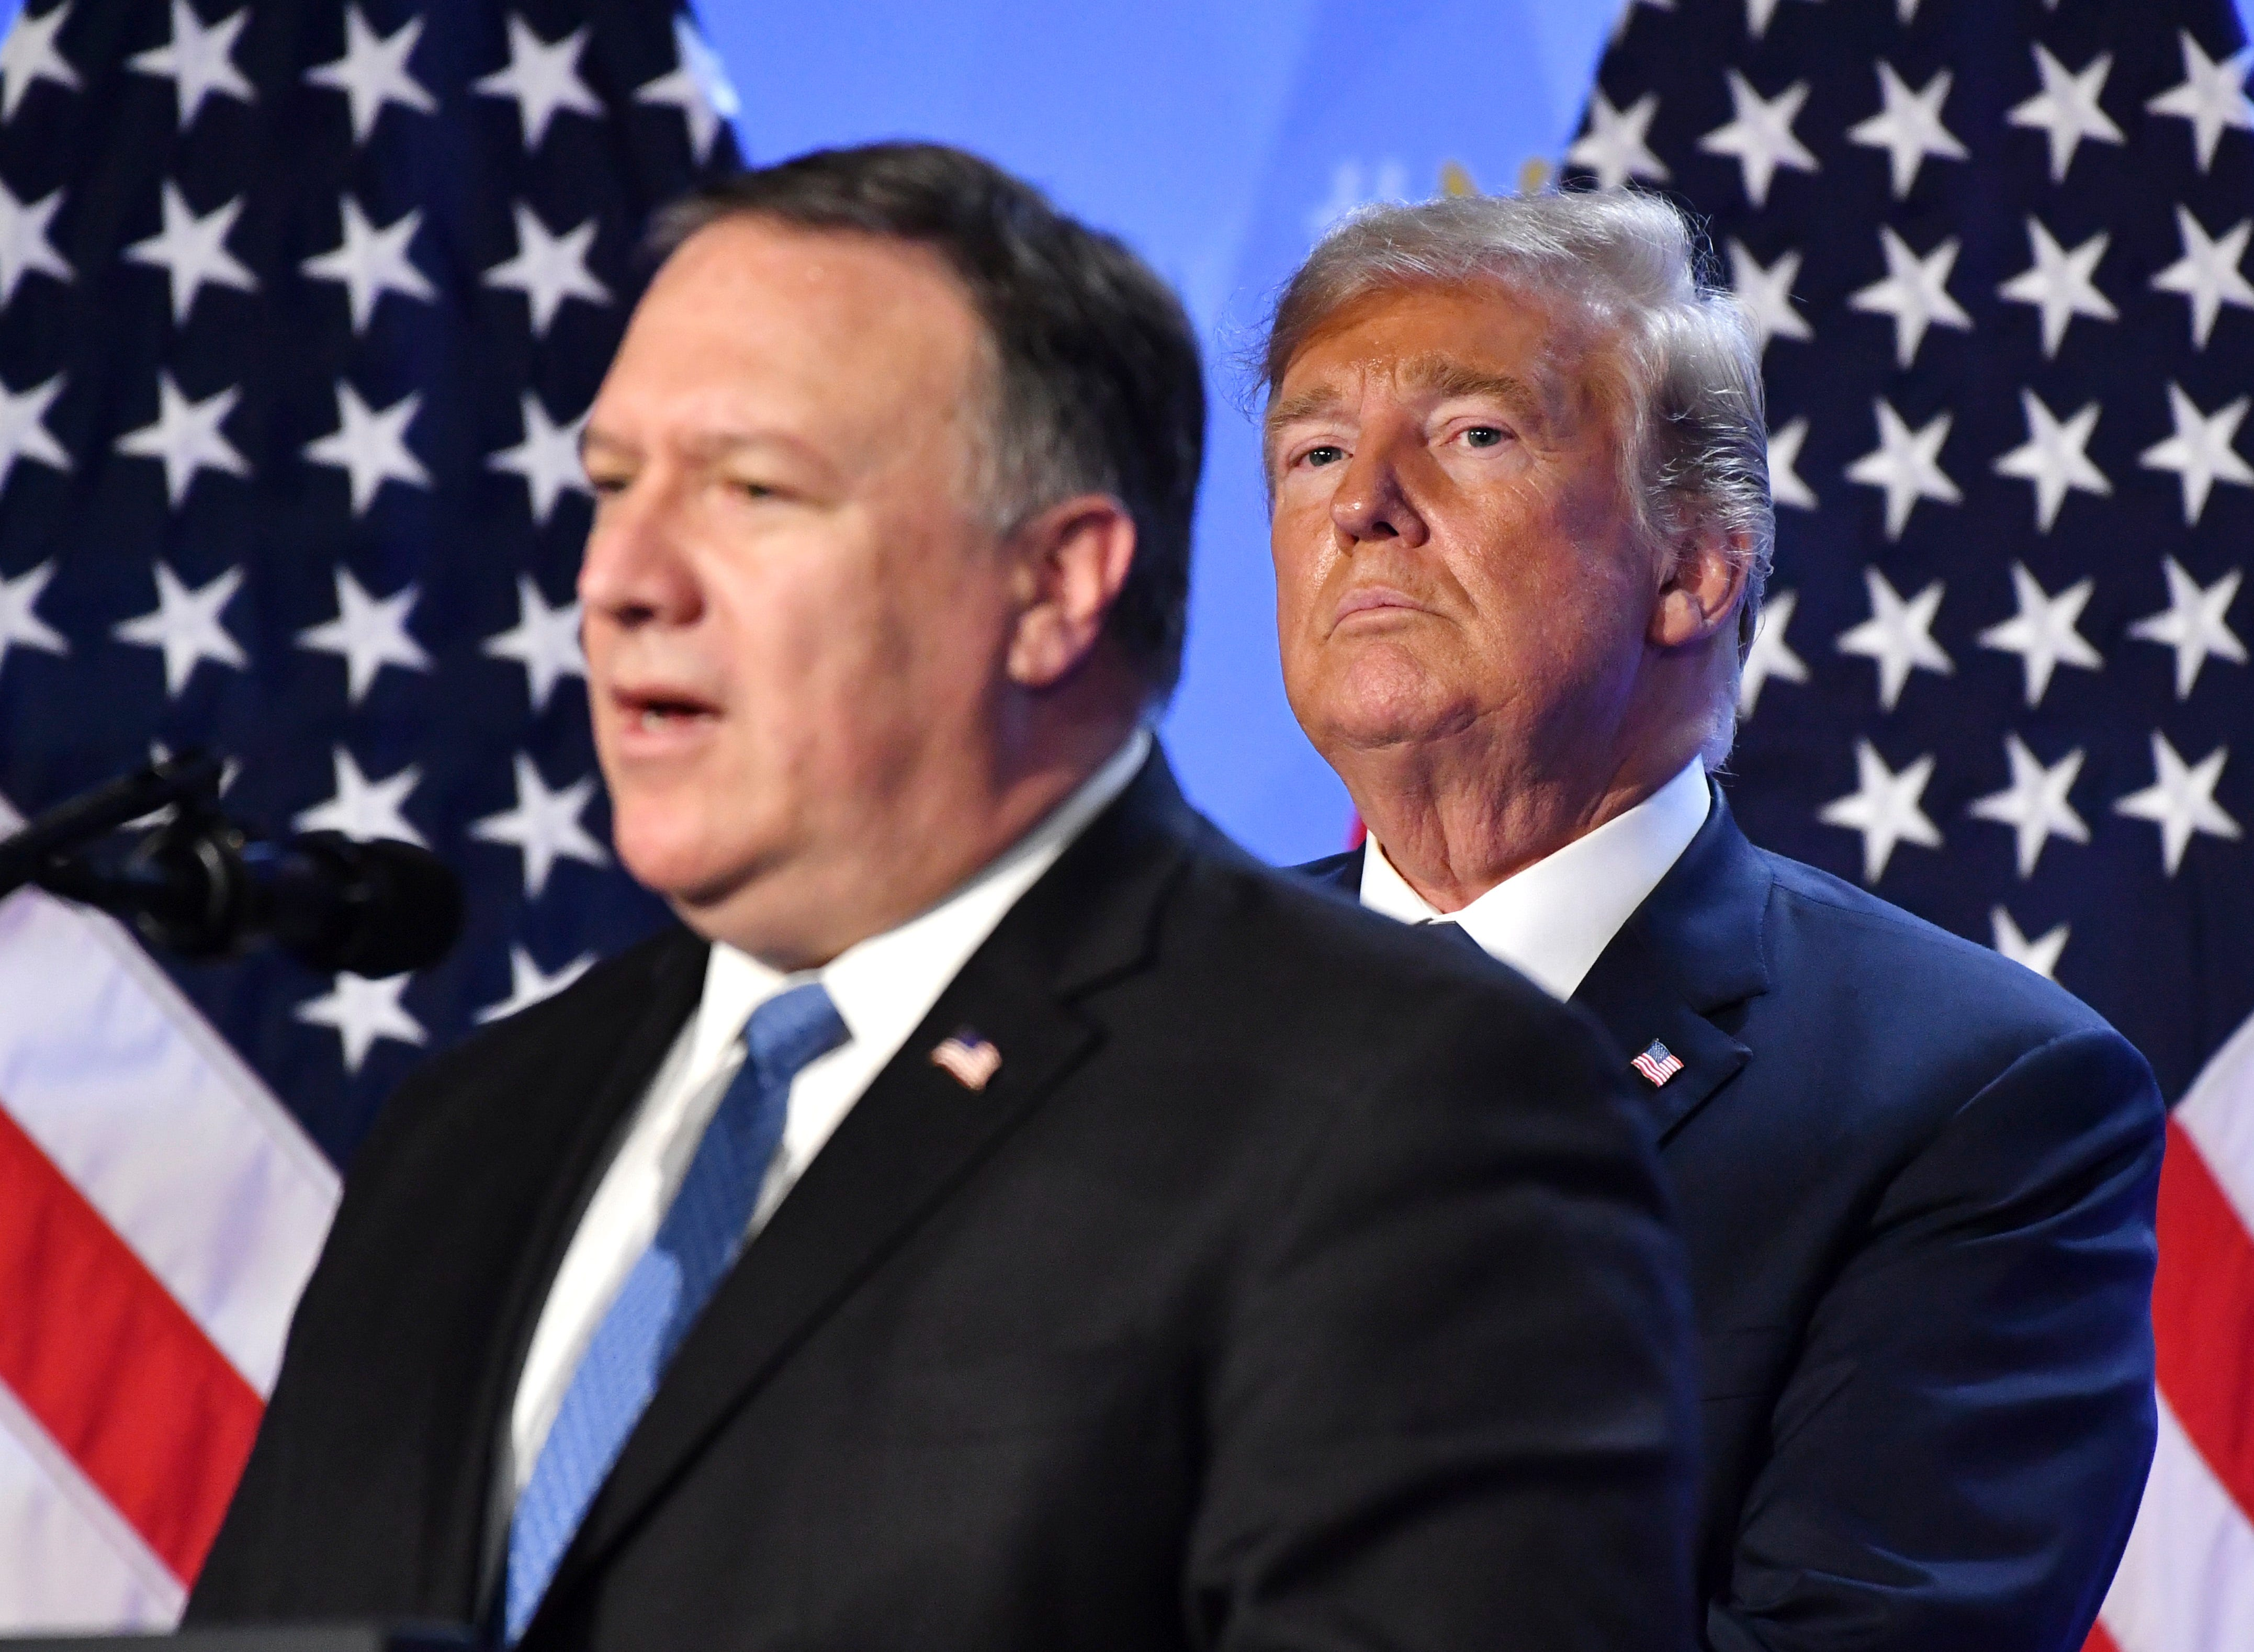 Must-see TV? A guide to Secretary of State Mike Pompeo's congressional grilling on Russia, Iran and more